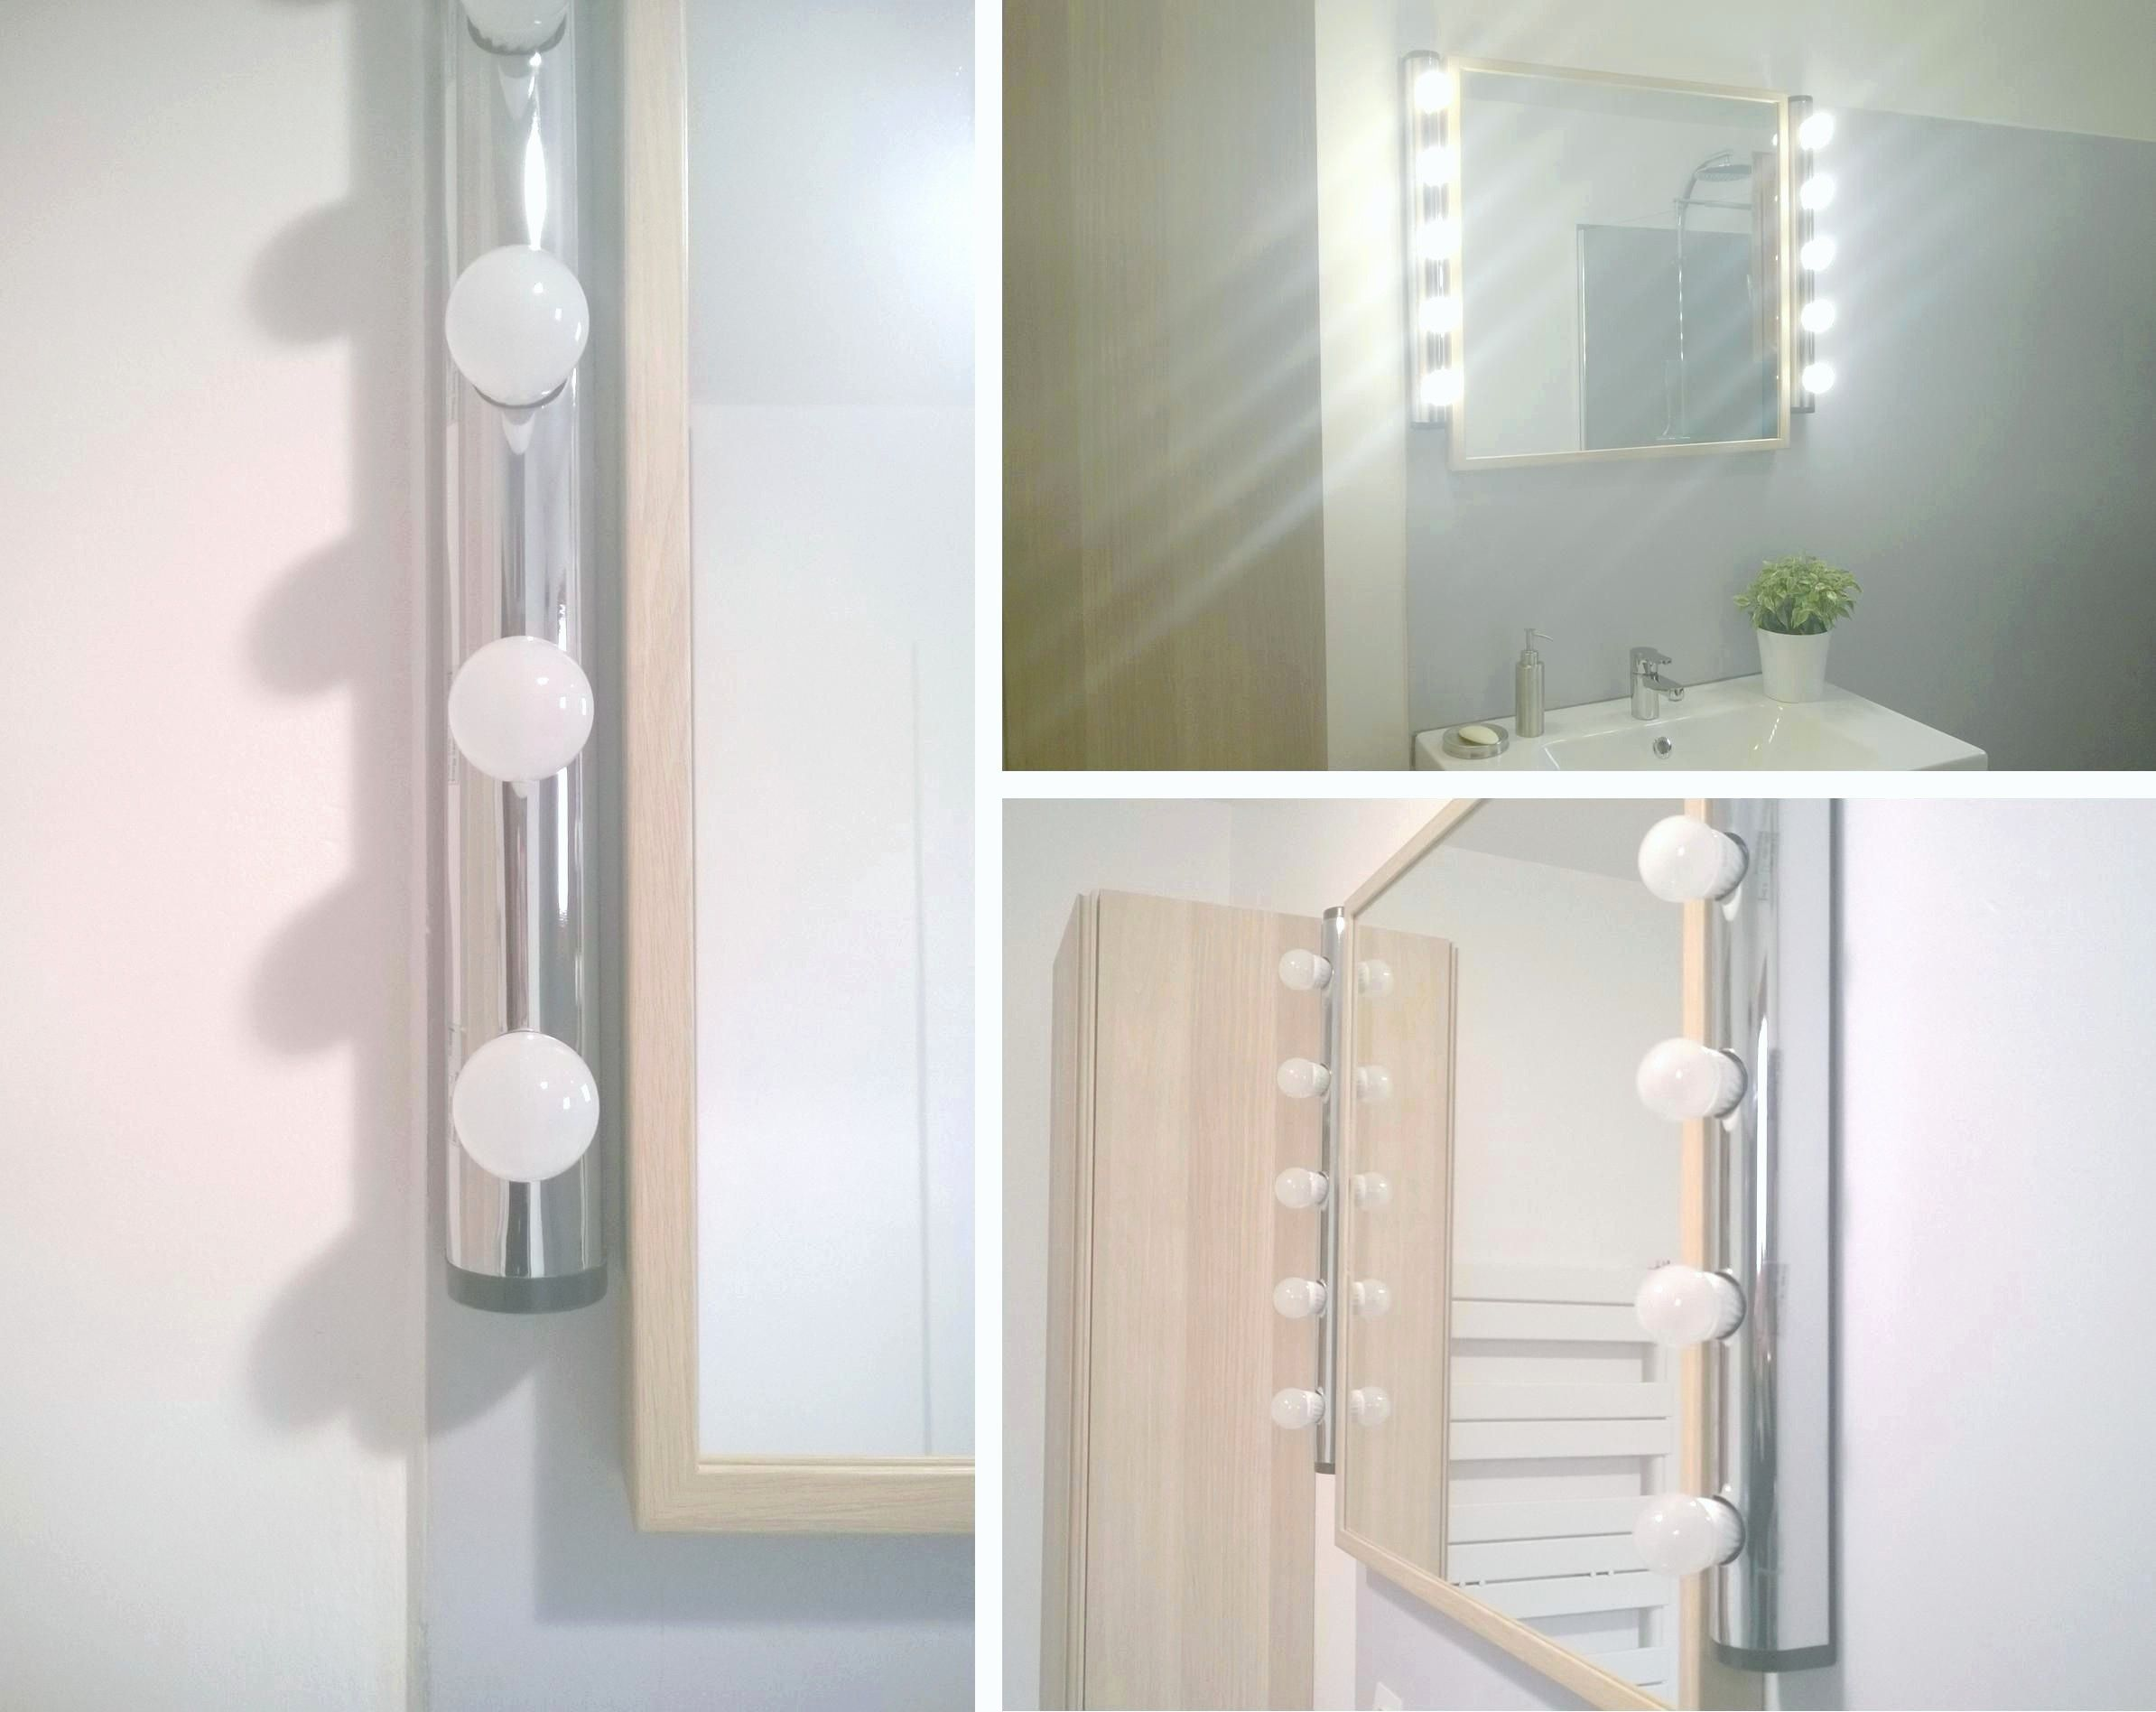 Fresh Leroy Merlin Fenetre De Toit Modern Bathroom Design Led Mirror Bathroom Mirror Cabinets